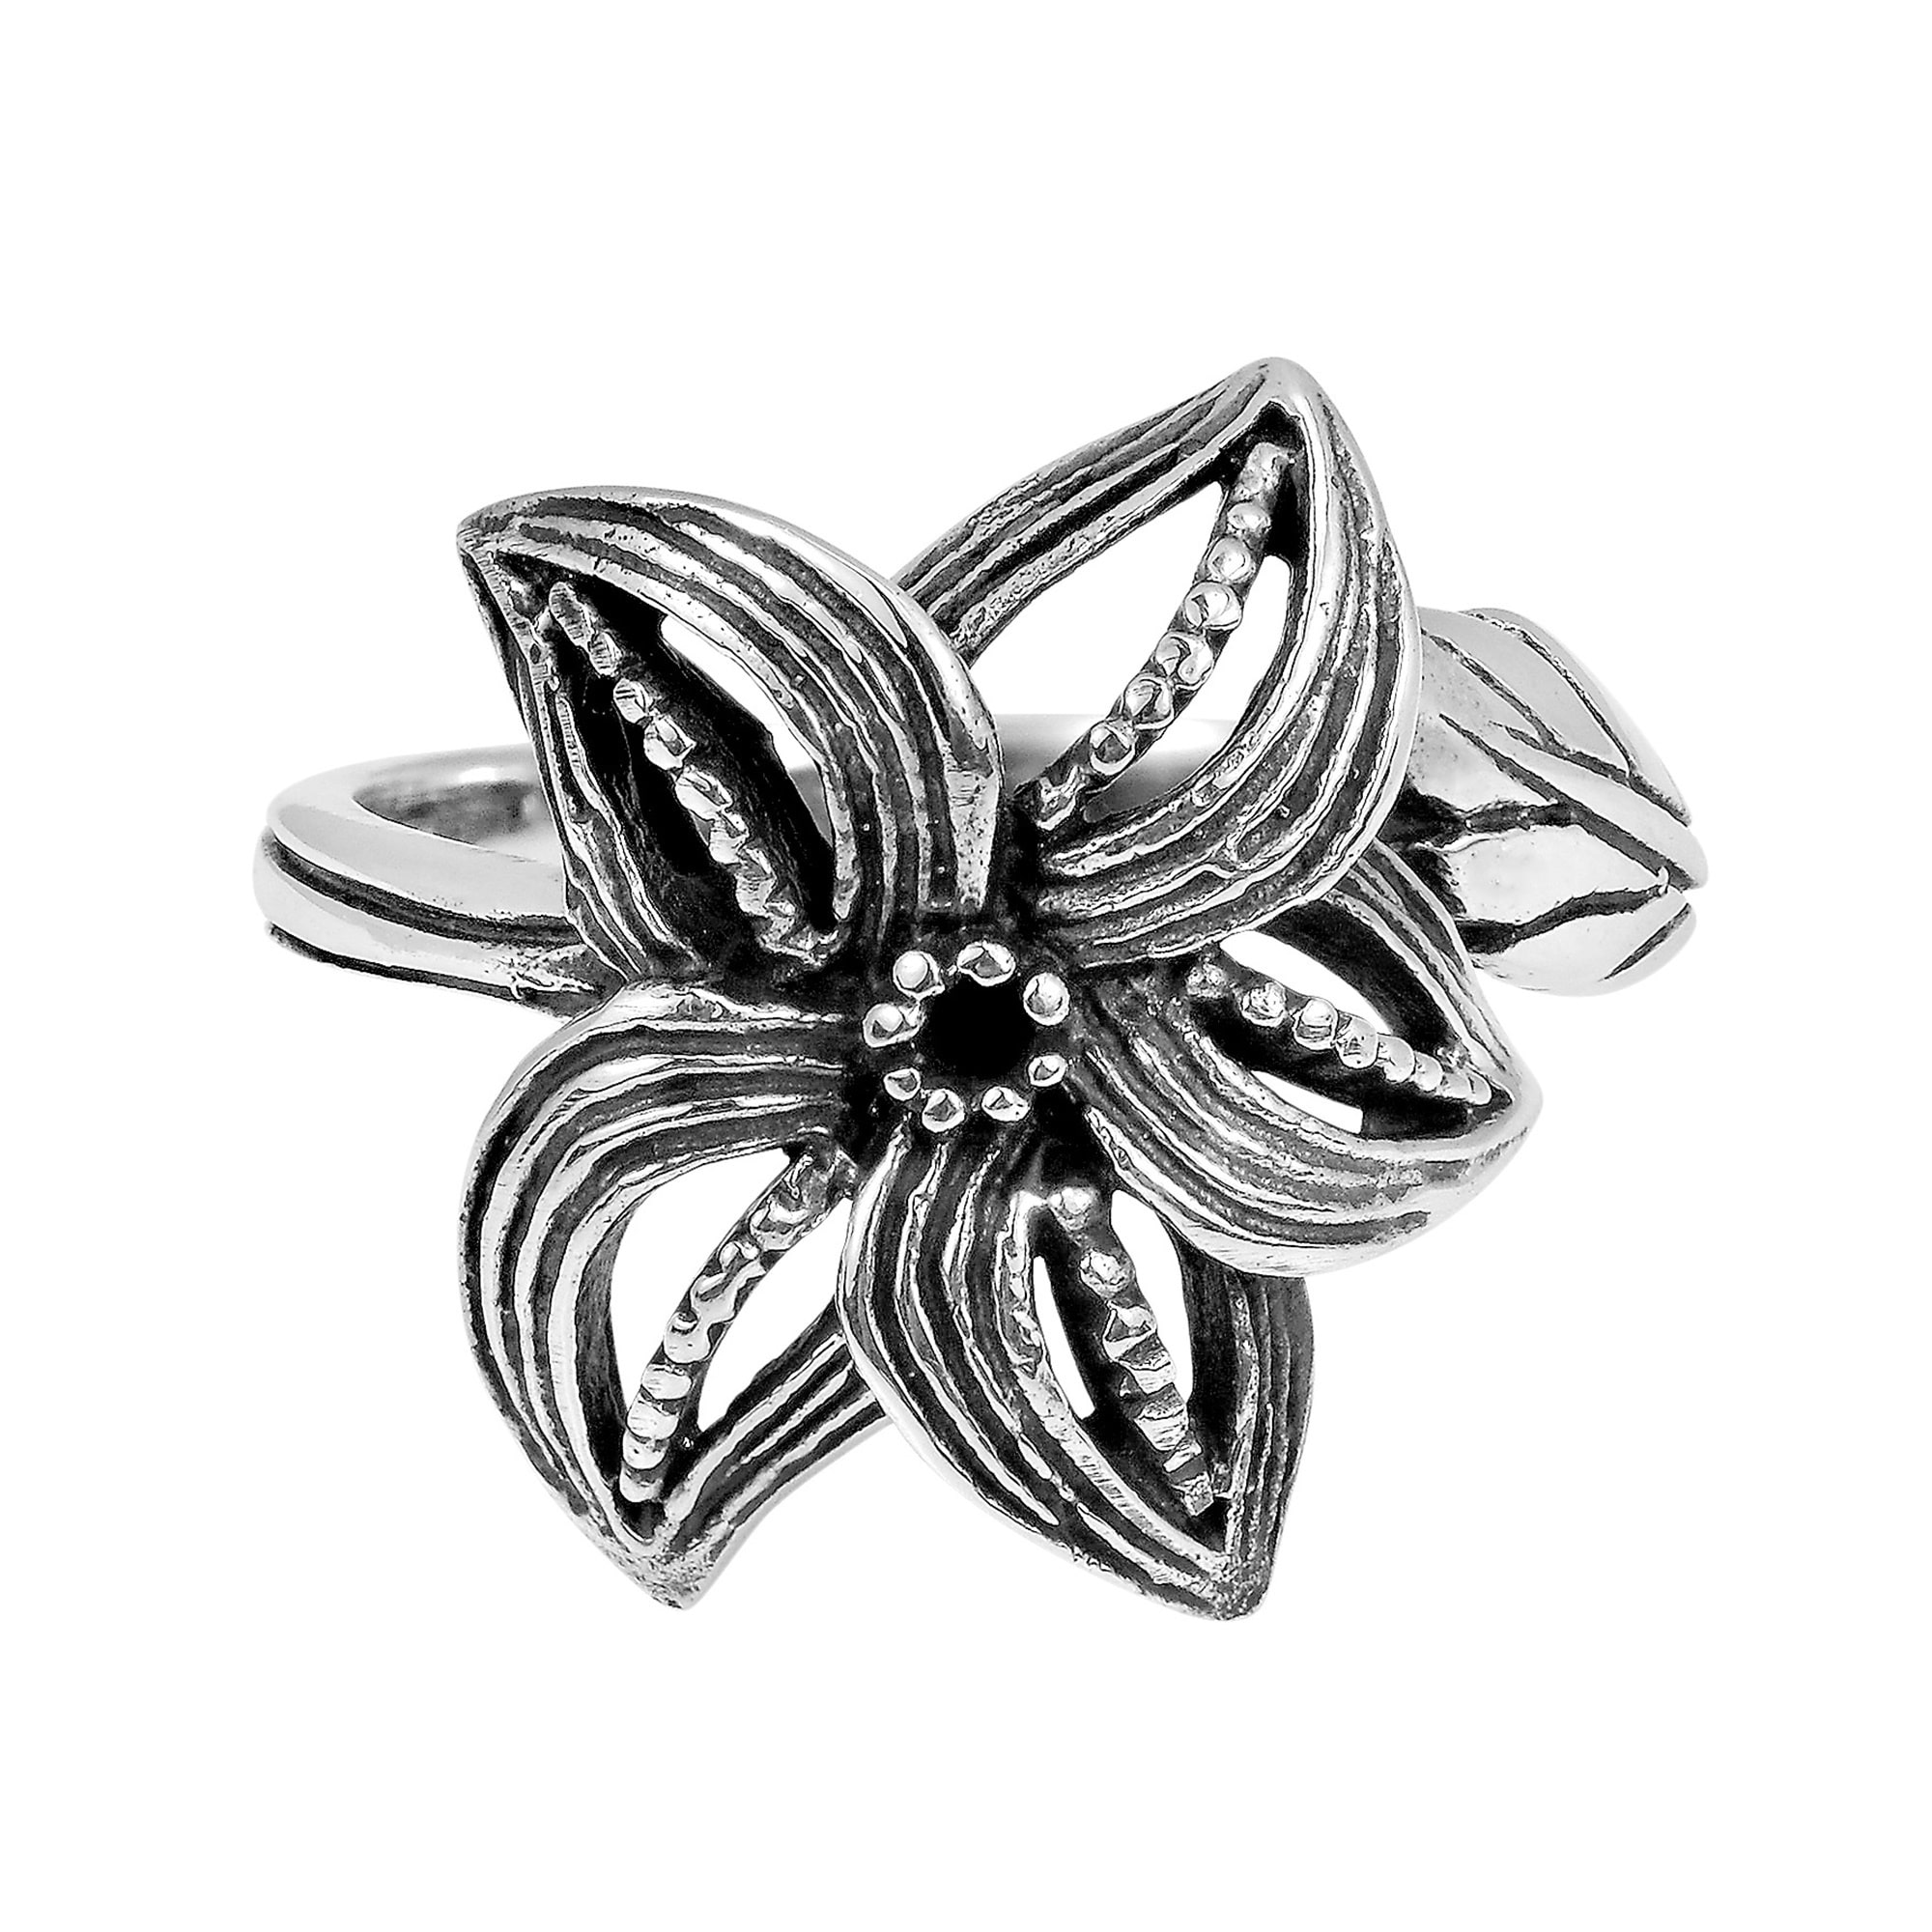 Aeravida Handmade Curved Petals Beautiful Siam Flower .925 Sterling Silver Ring (Thailand)